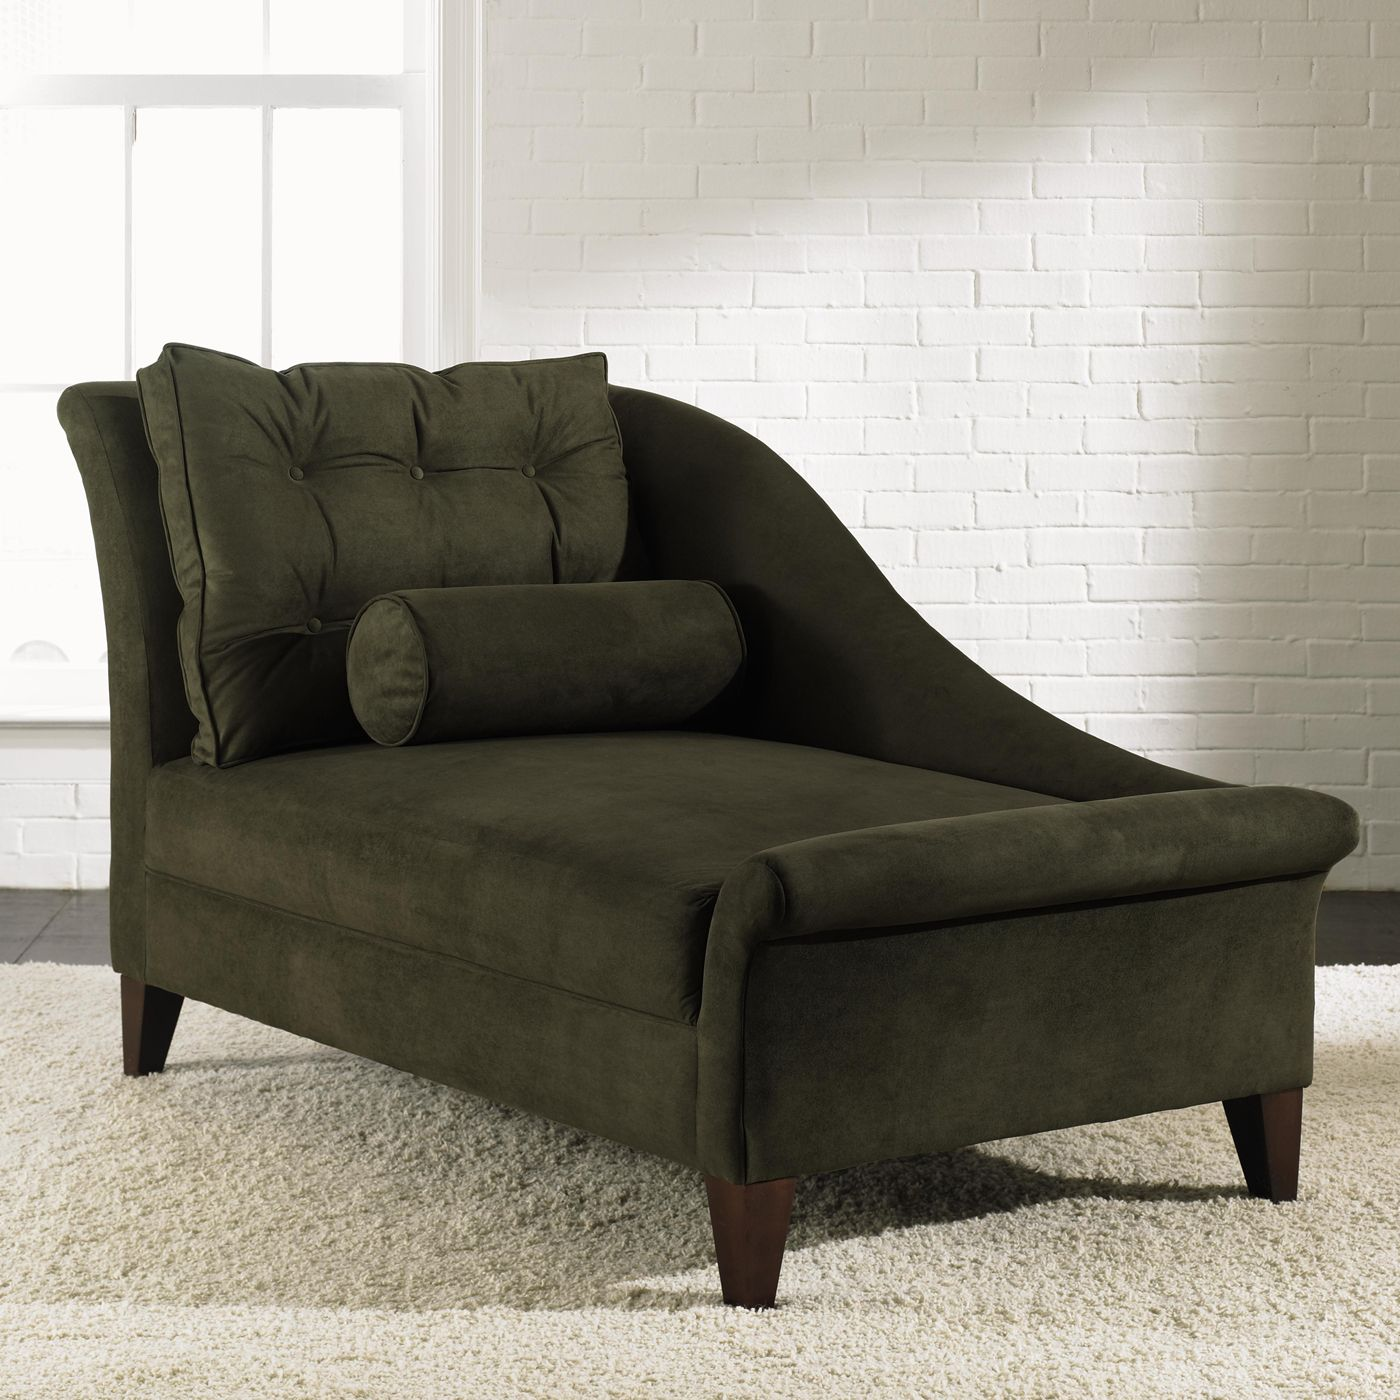 Klaussner 270 lincoln chaise lounge home decorating for Einrichtungsideen lesezimmer